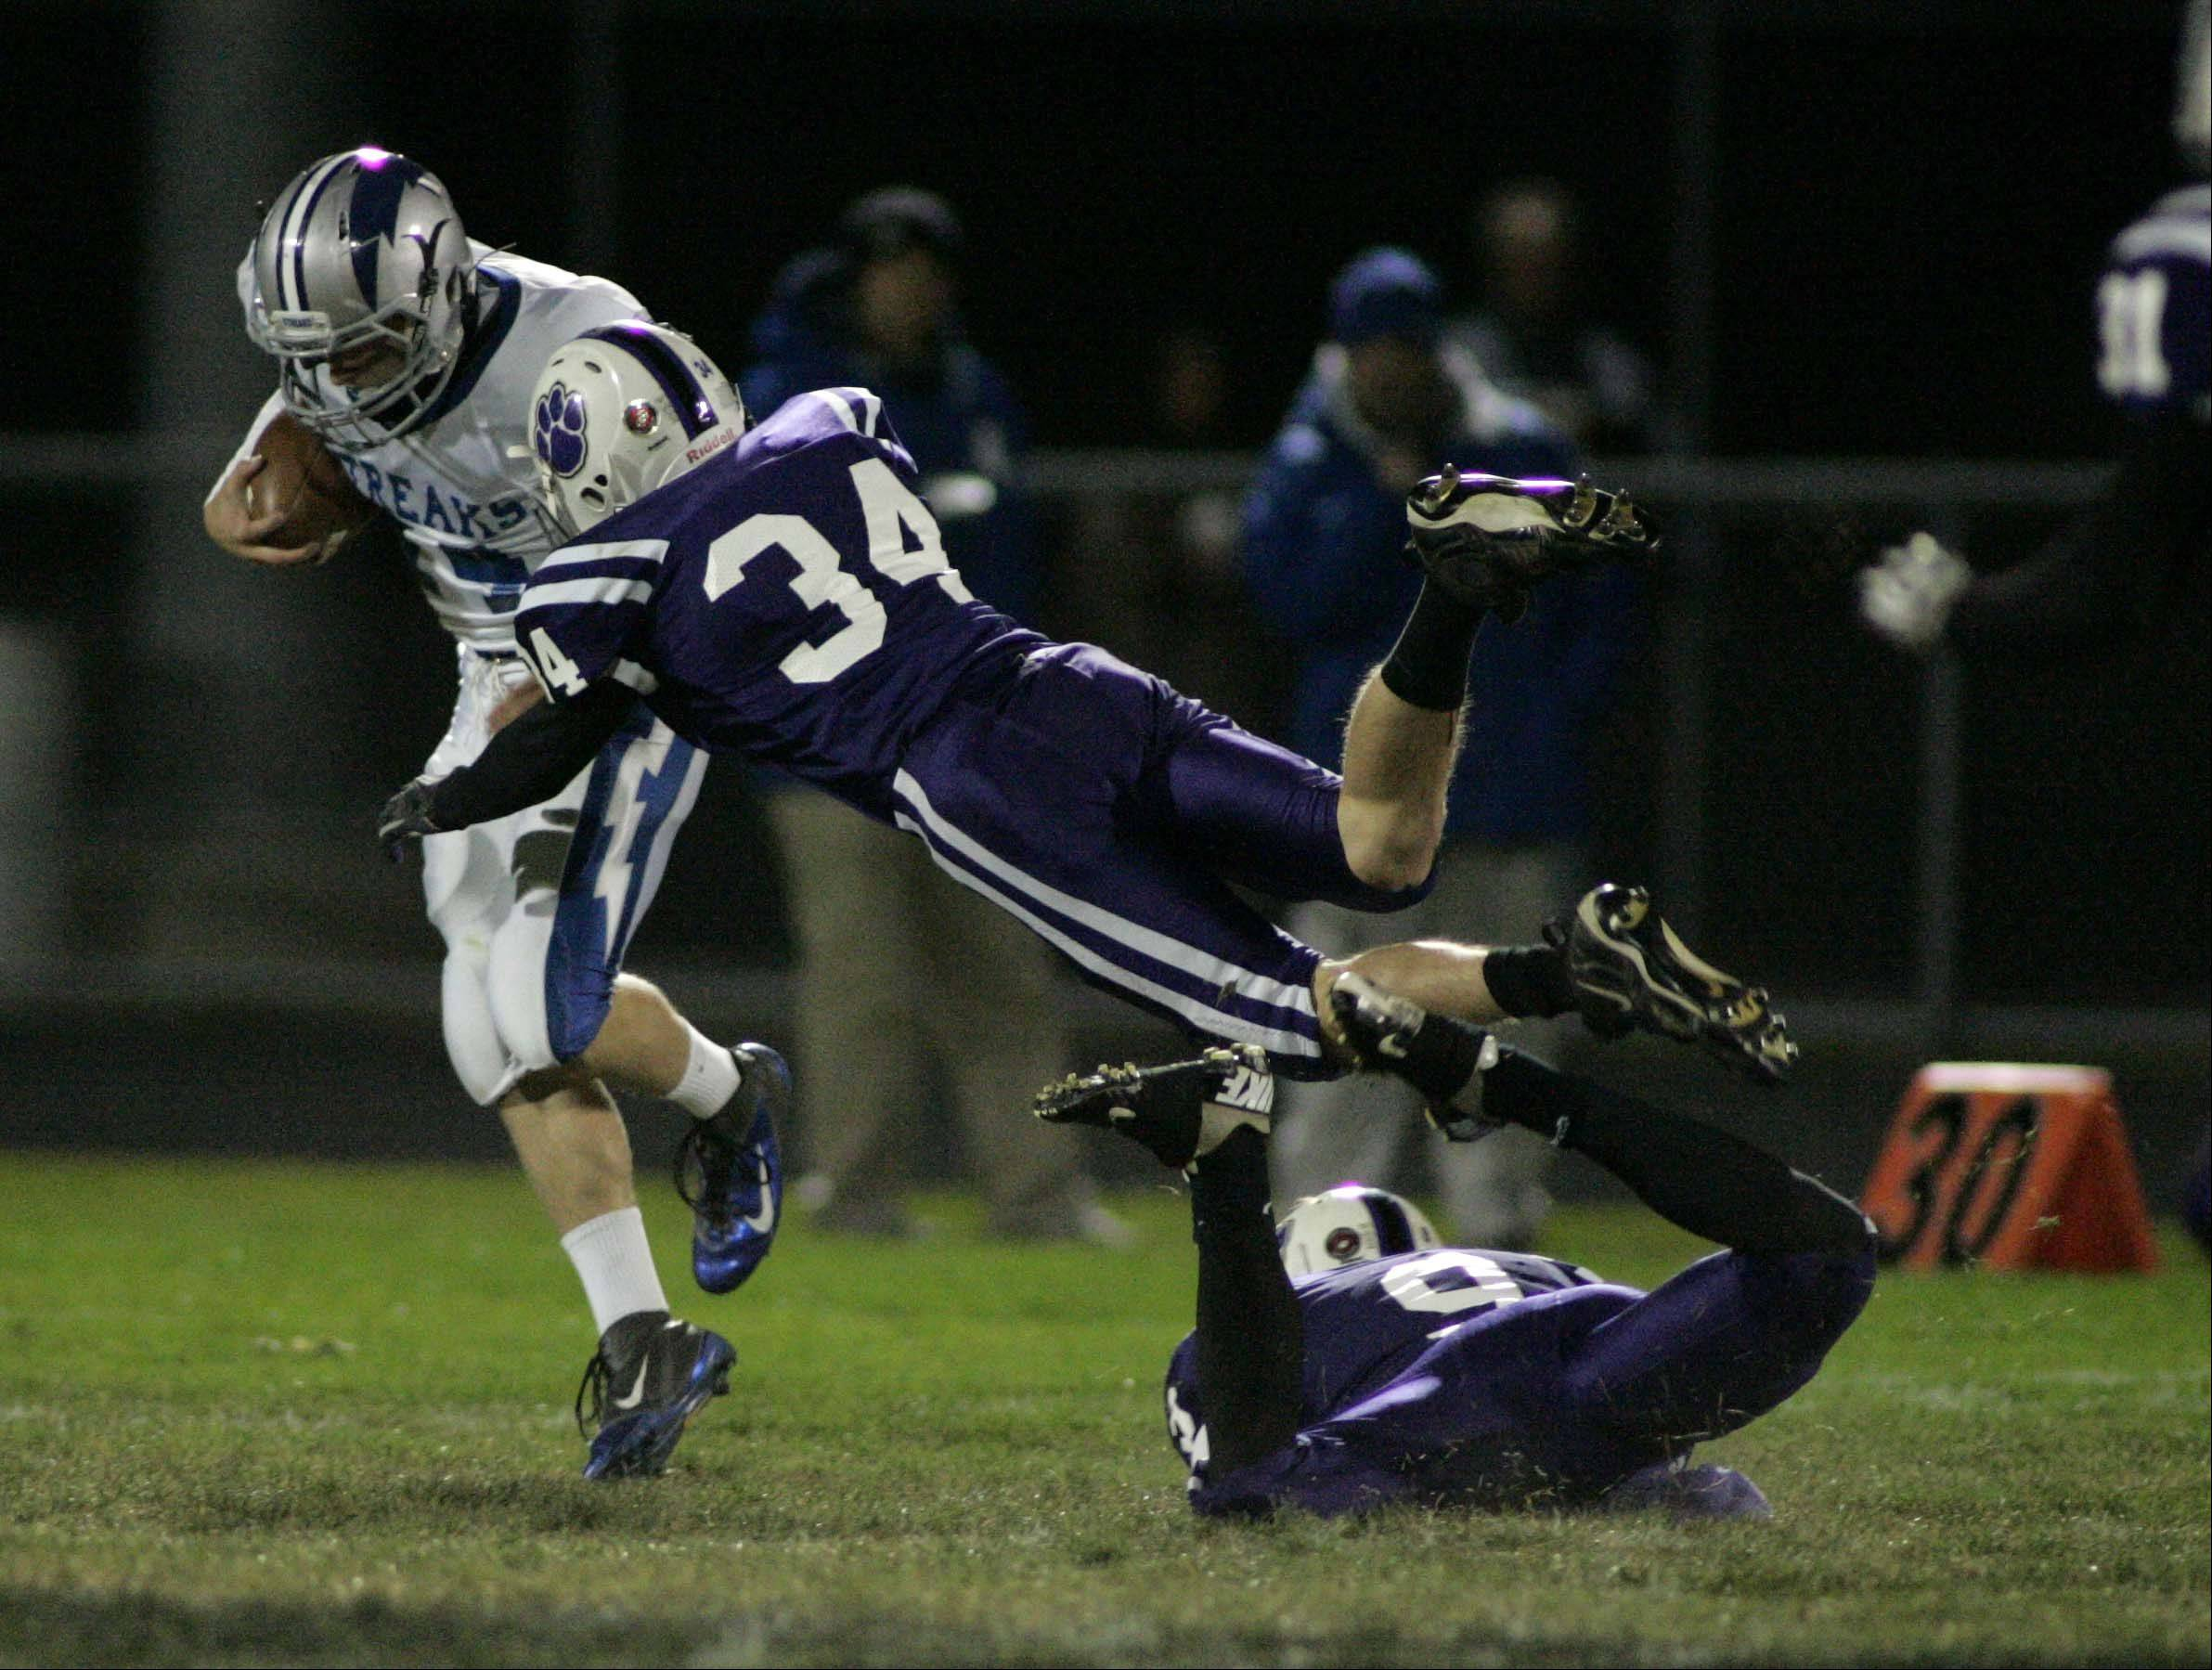 Hampshire's Brendan Waterworth and Kyle Anderson try to bring down Woodstock's Alan Hafer after an interception.